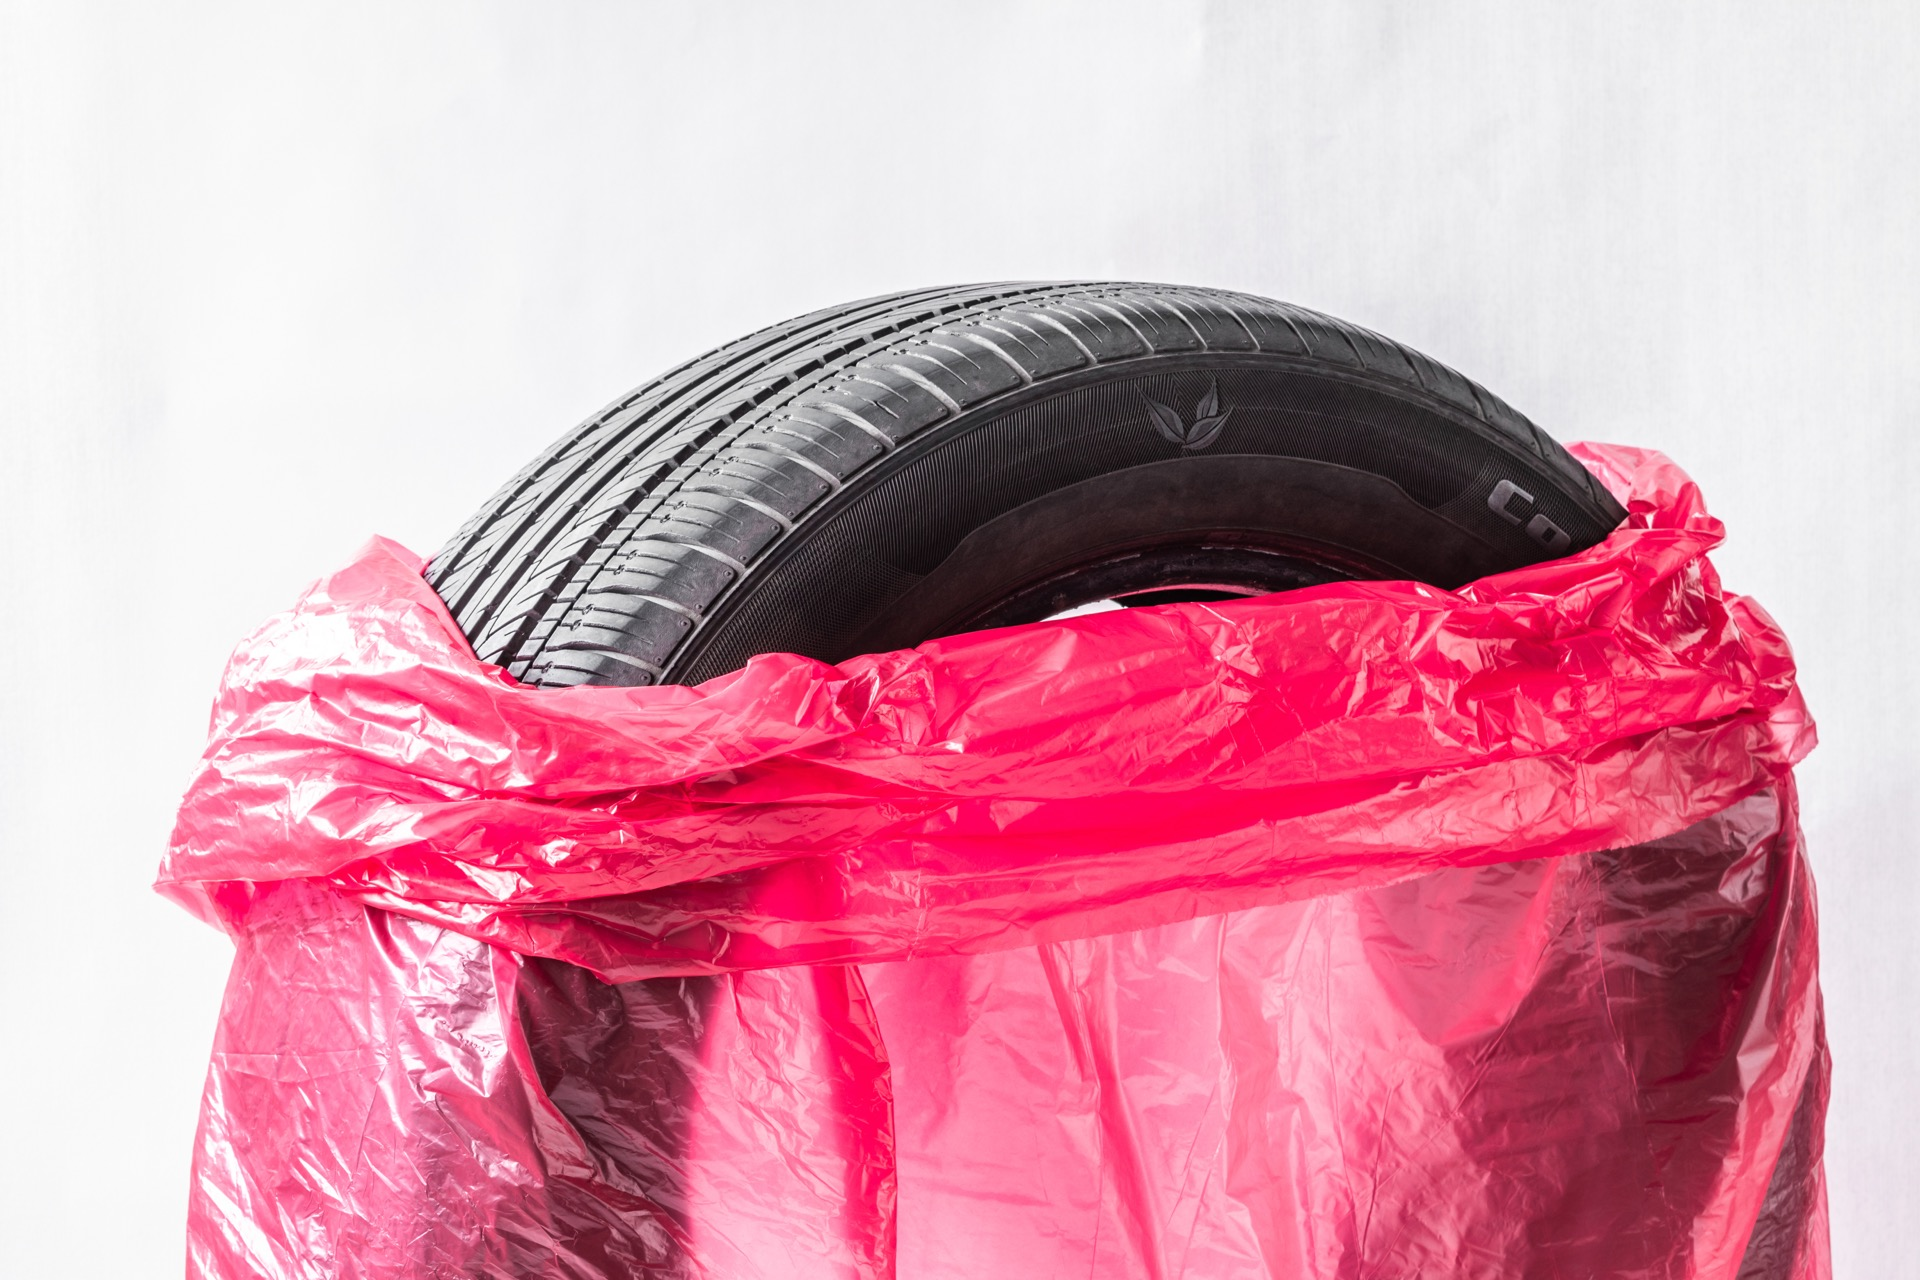 Bagging a tire for storage